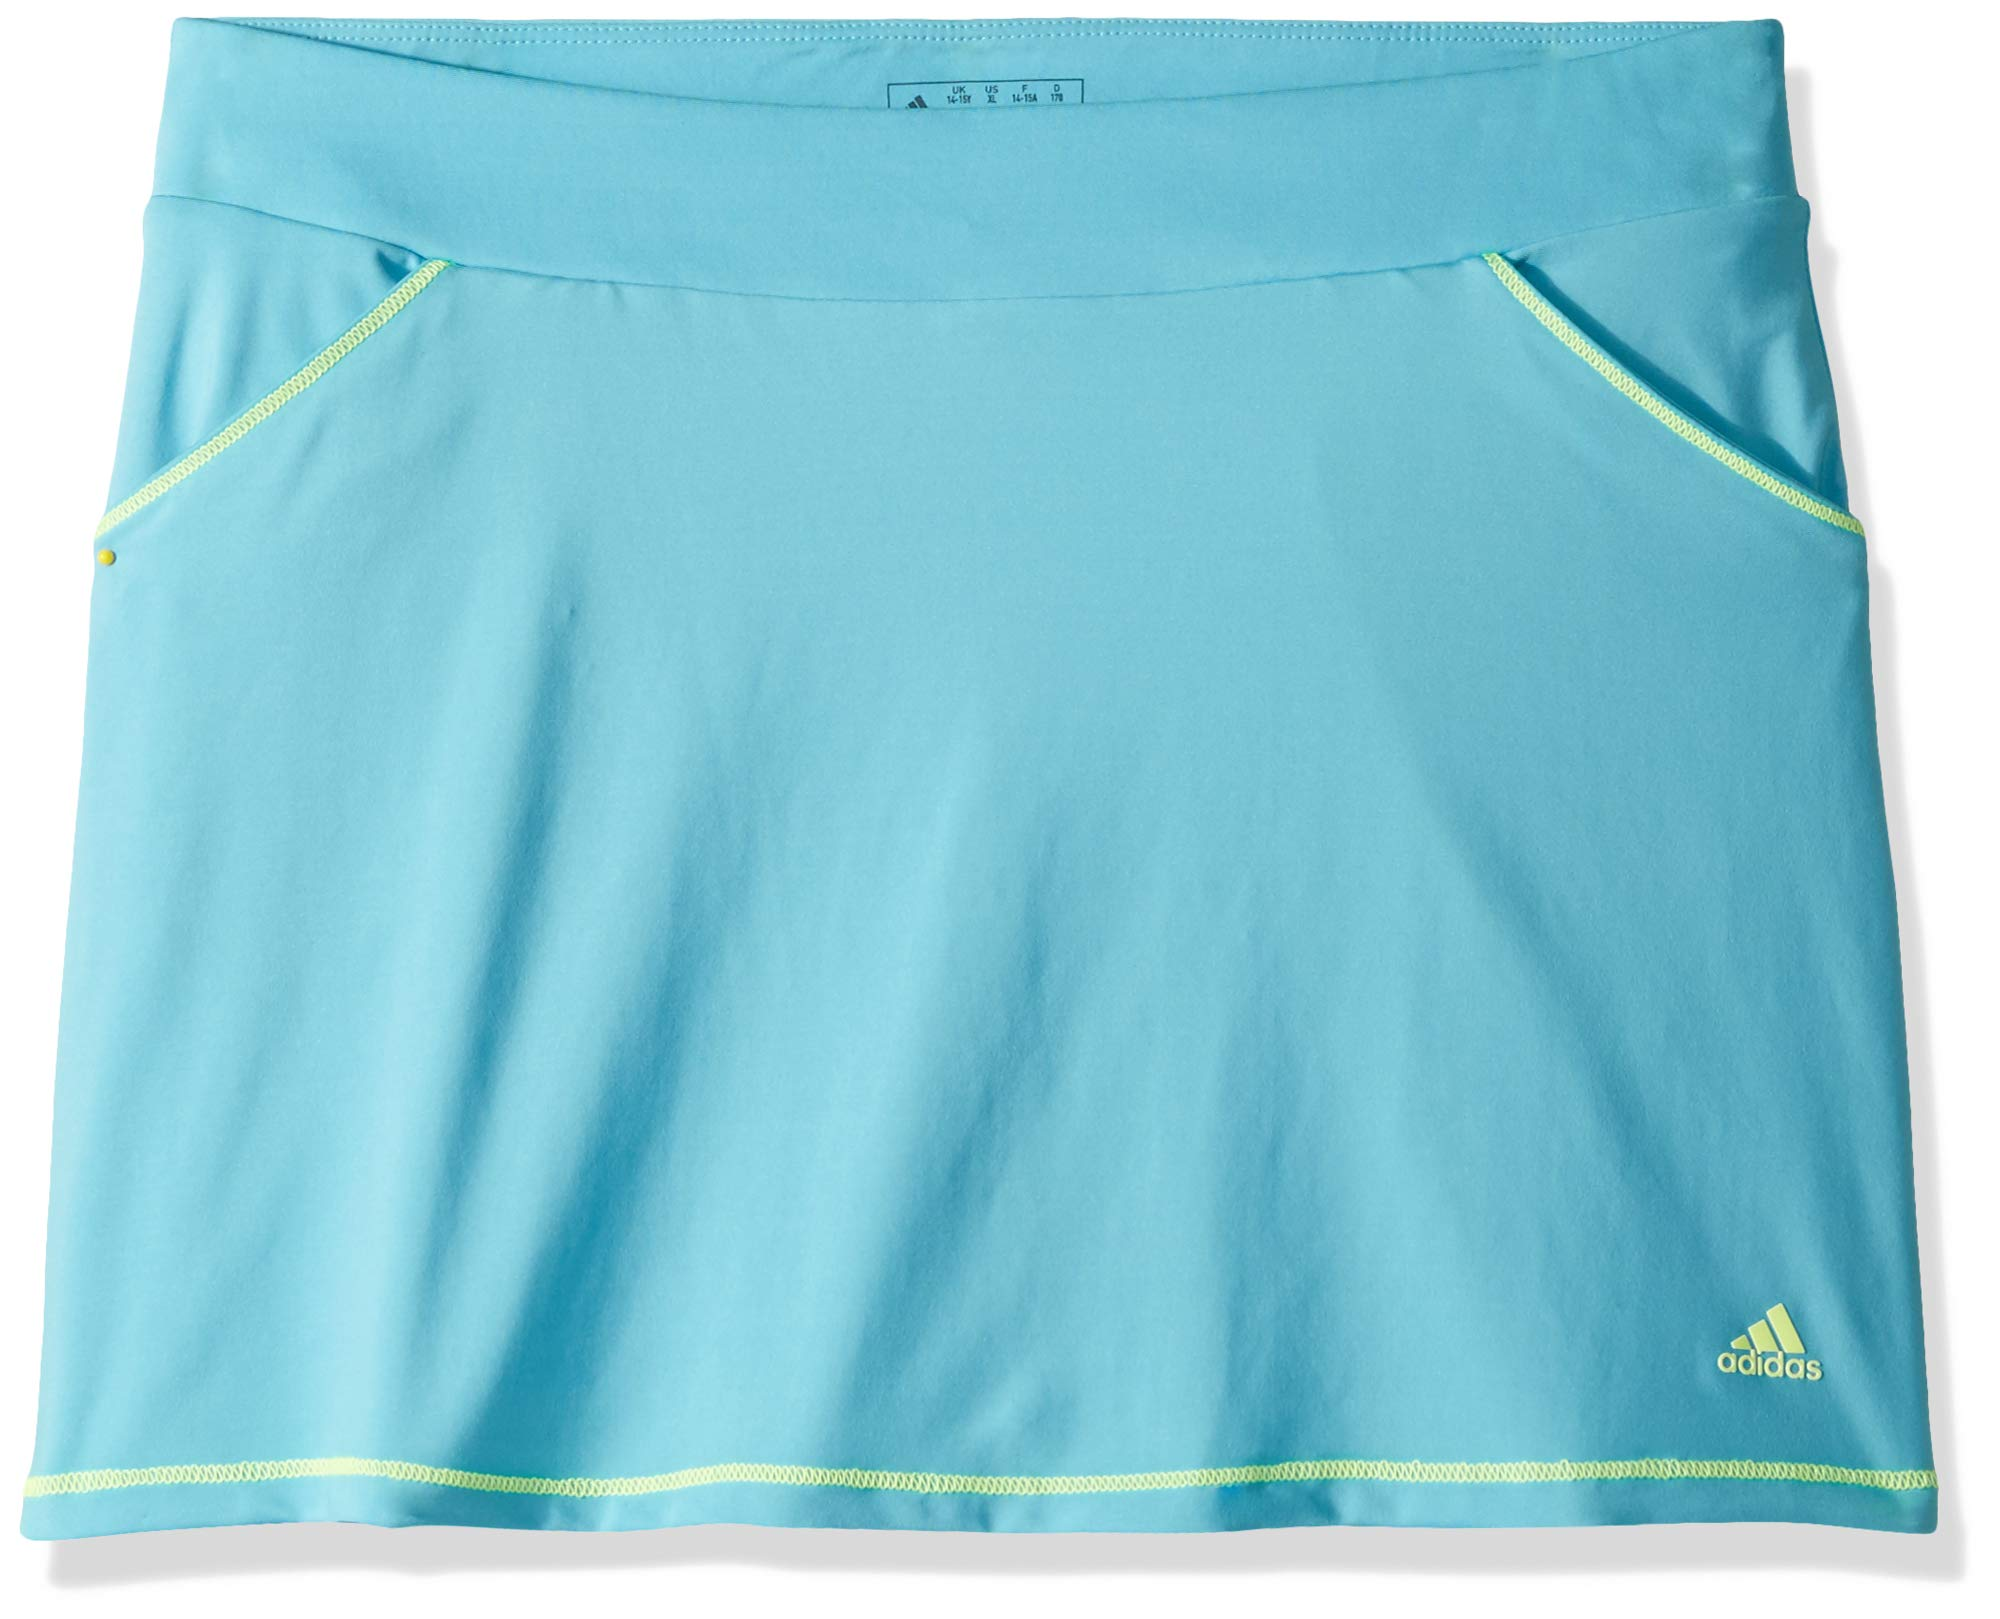 adidas Golf Printed Golf Skort, Bright Cyan, Medium by adidas